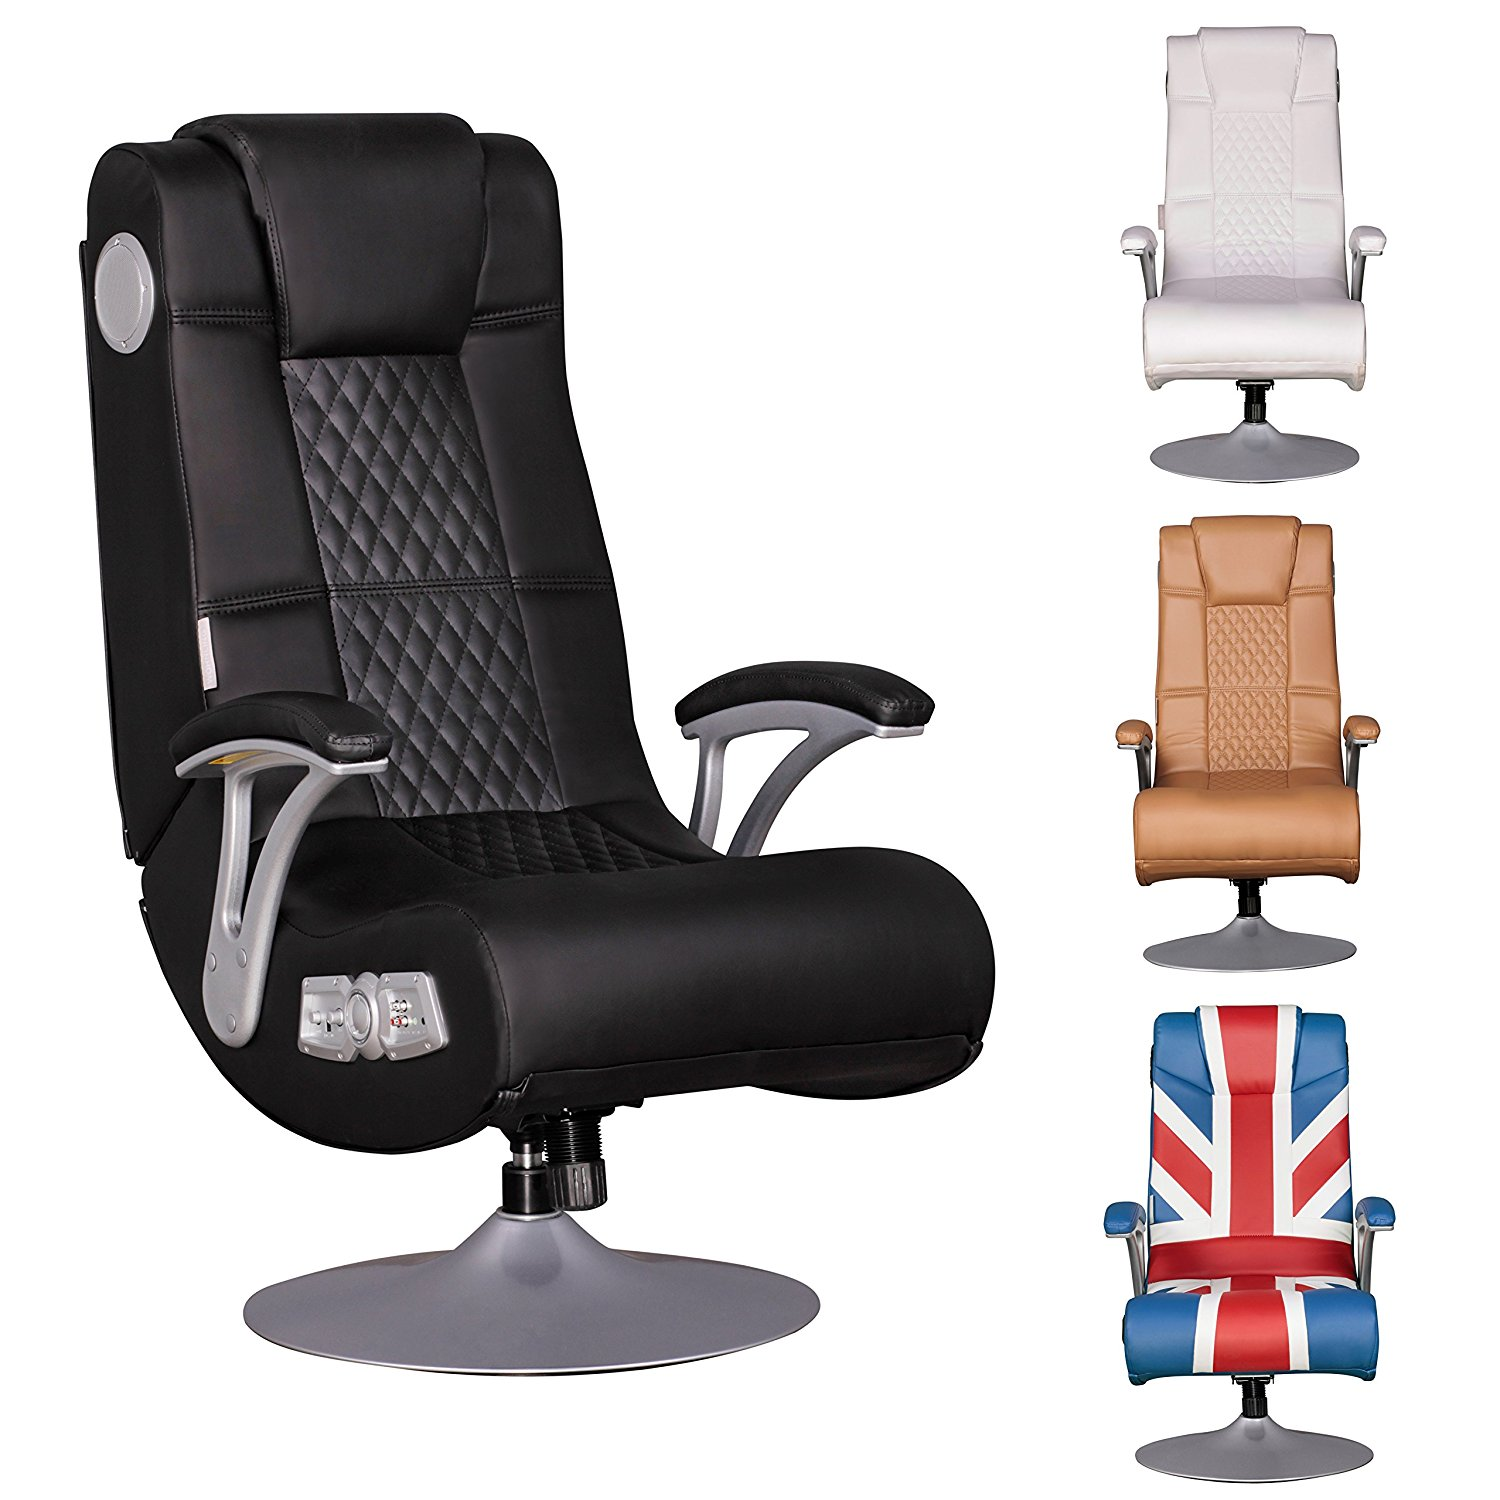 cool gaming chair best potty for boy glygatech every gamer needs a try